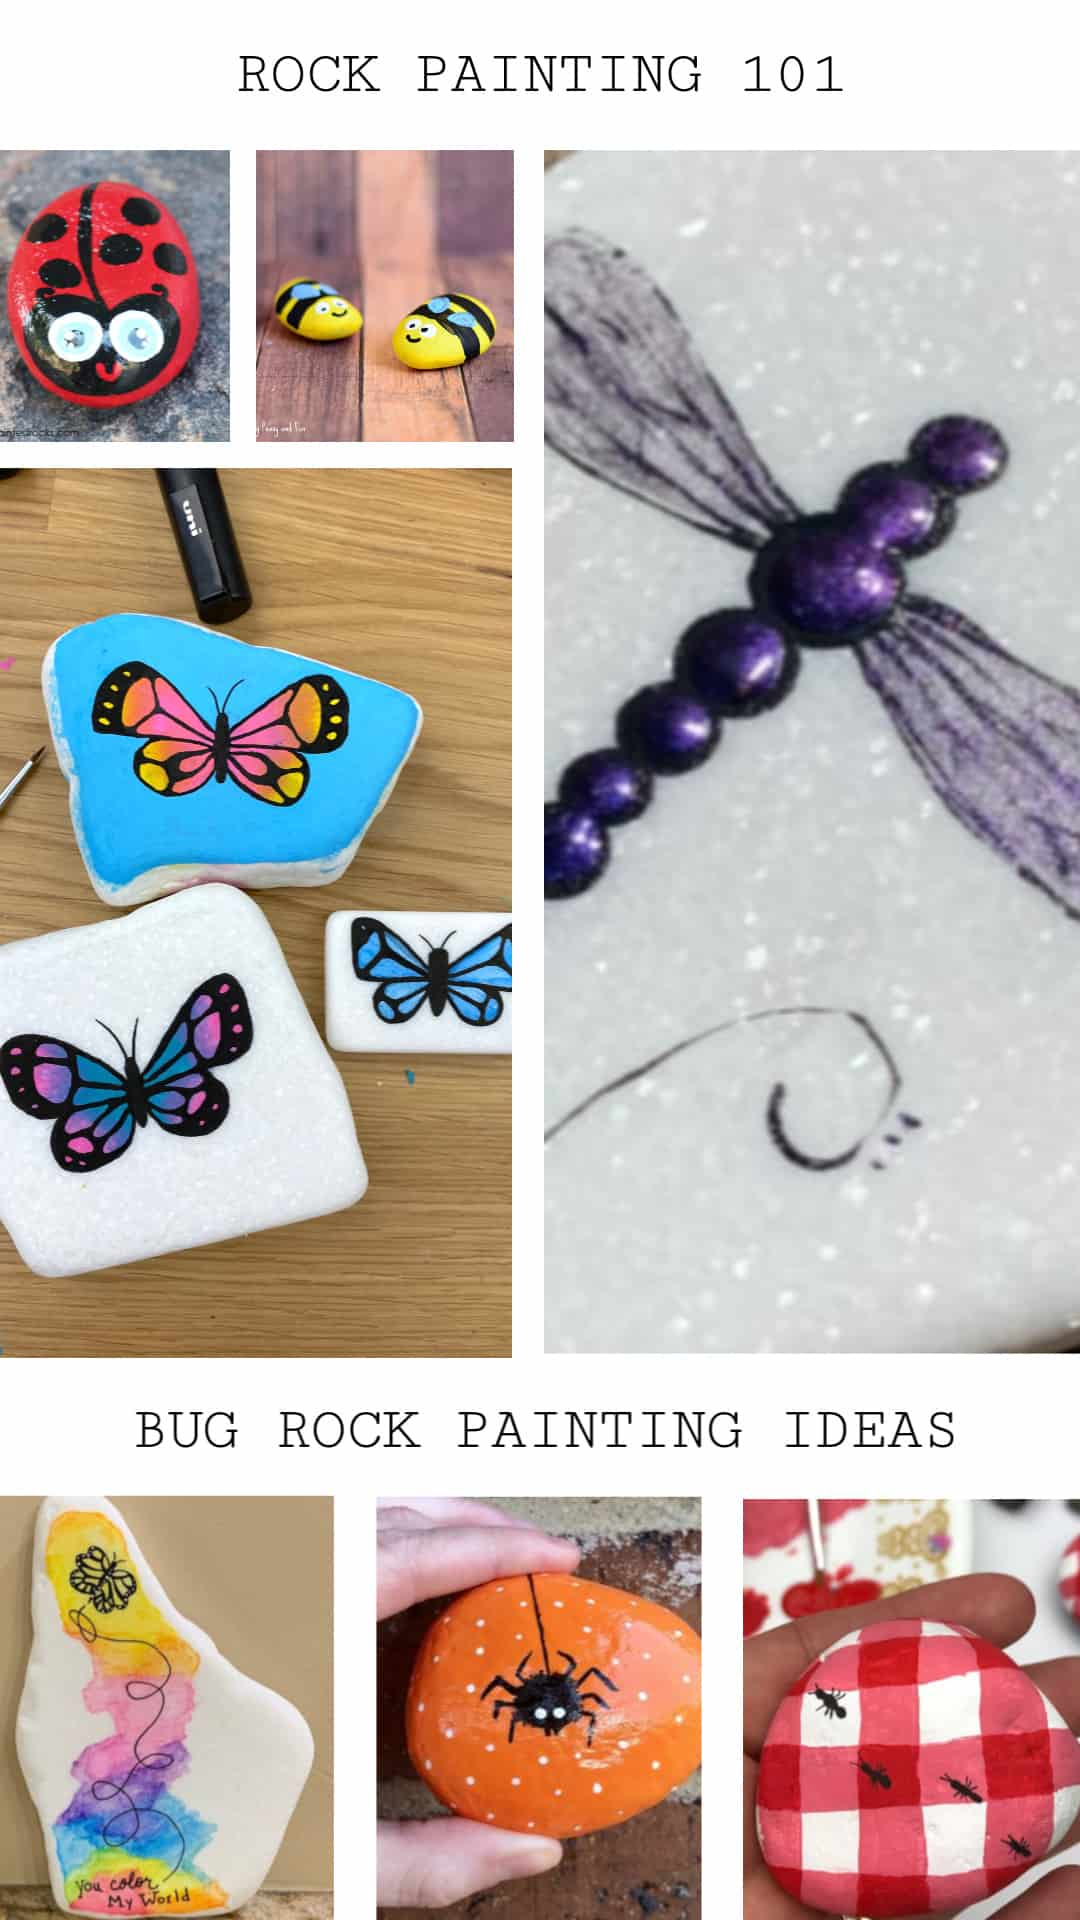 10 Butterflies And Bugs Rock Painting Ideas You Ll Love Rock Painting 101